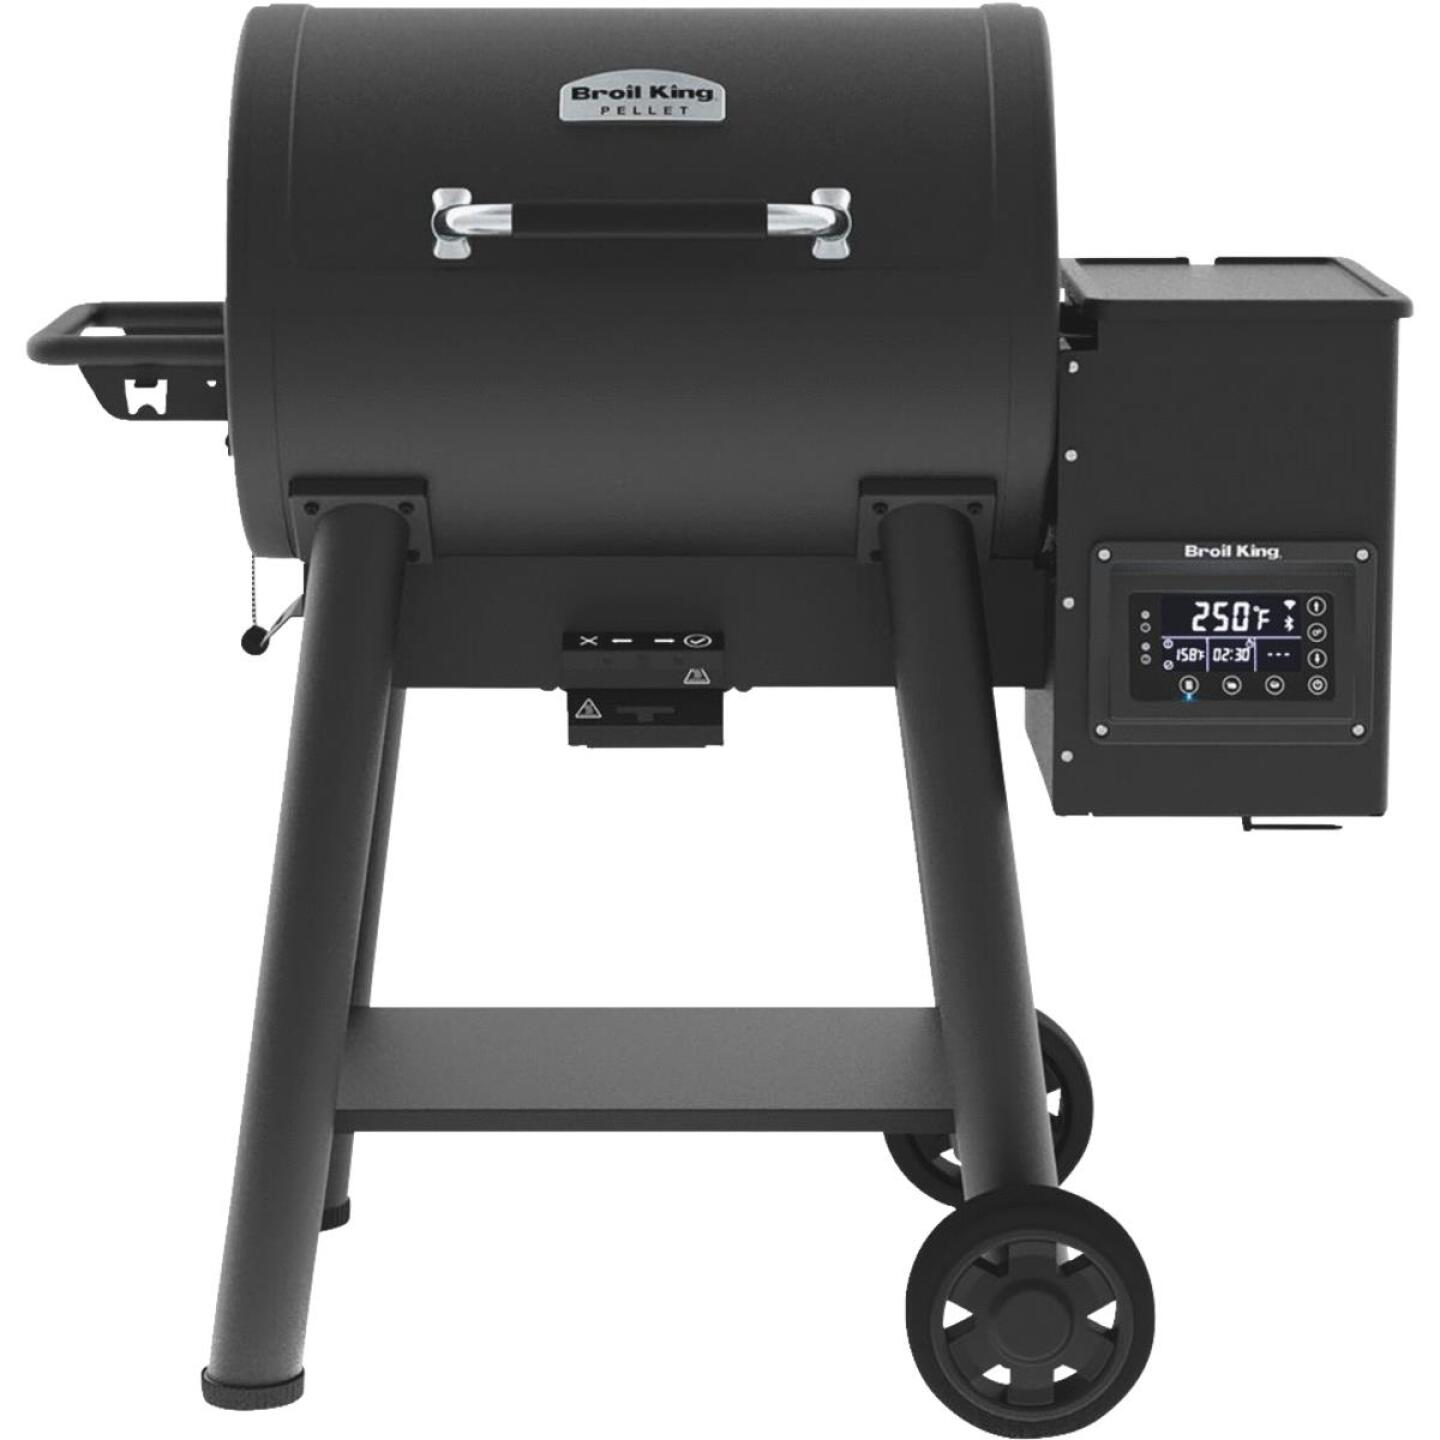 Broil King Baron Pellet 400 Black 635 Sq. In. Grill Image 1